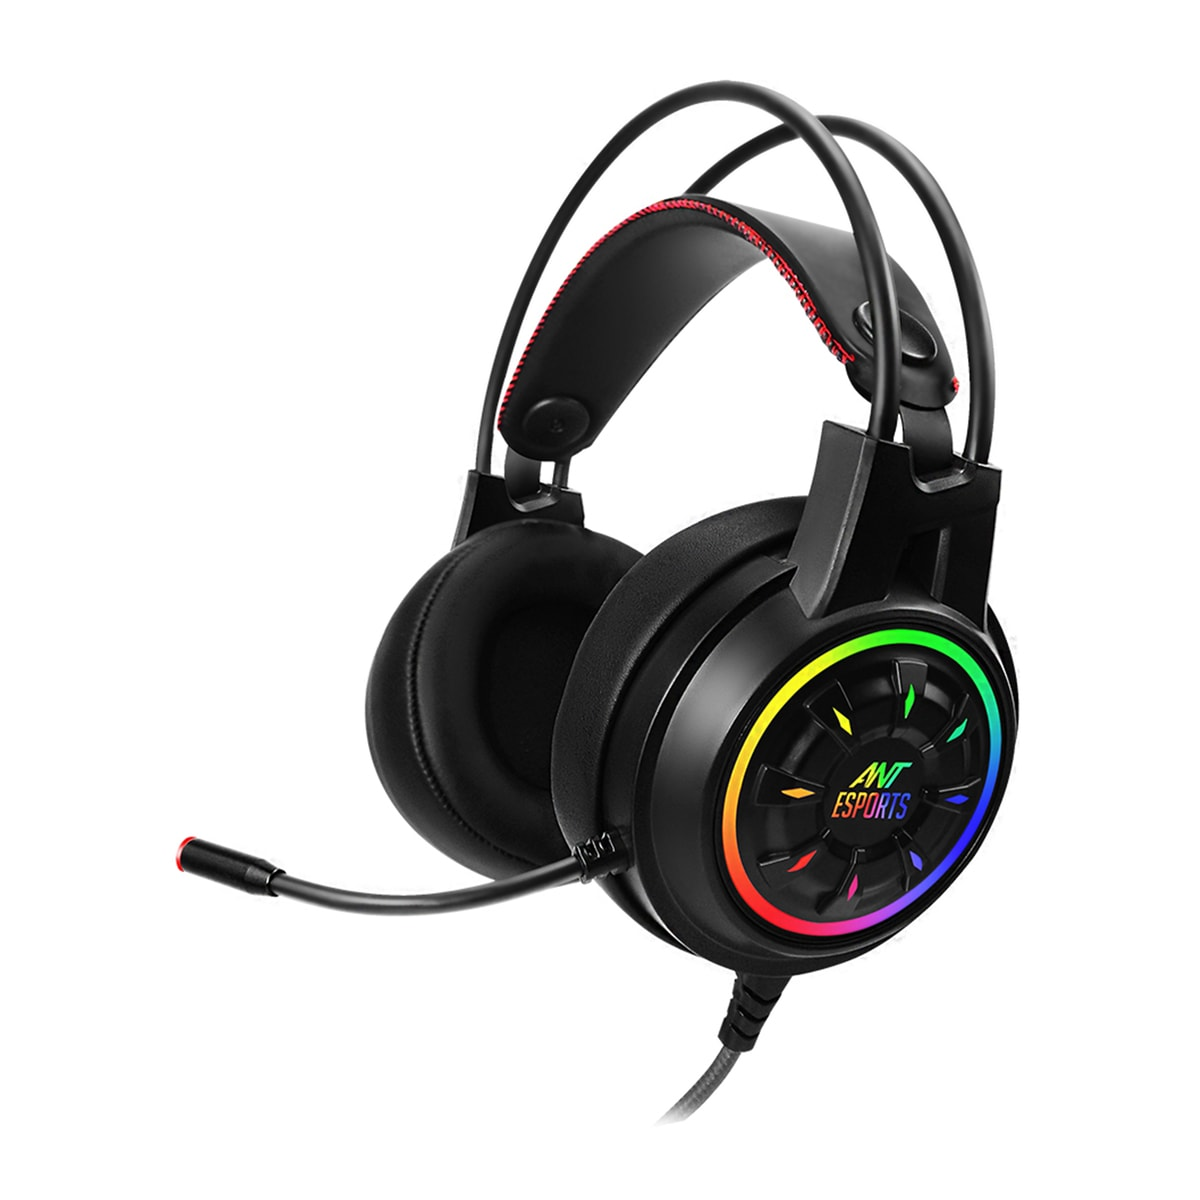 ANT ESPORTS H707 HD RGB LED GAMING HEADSET